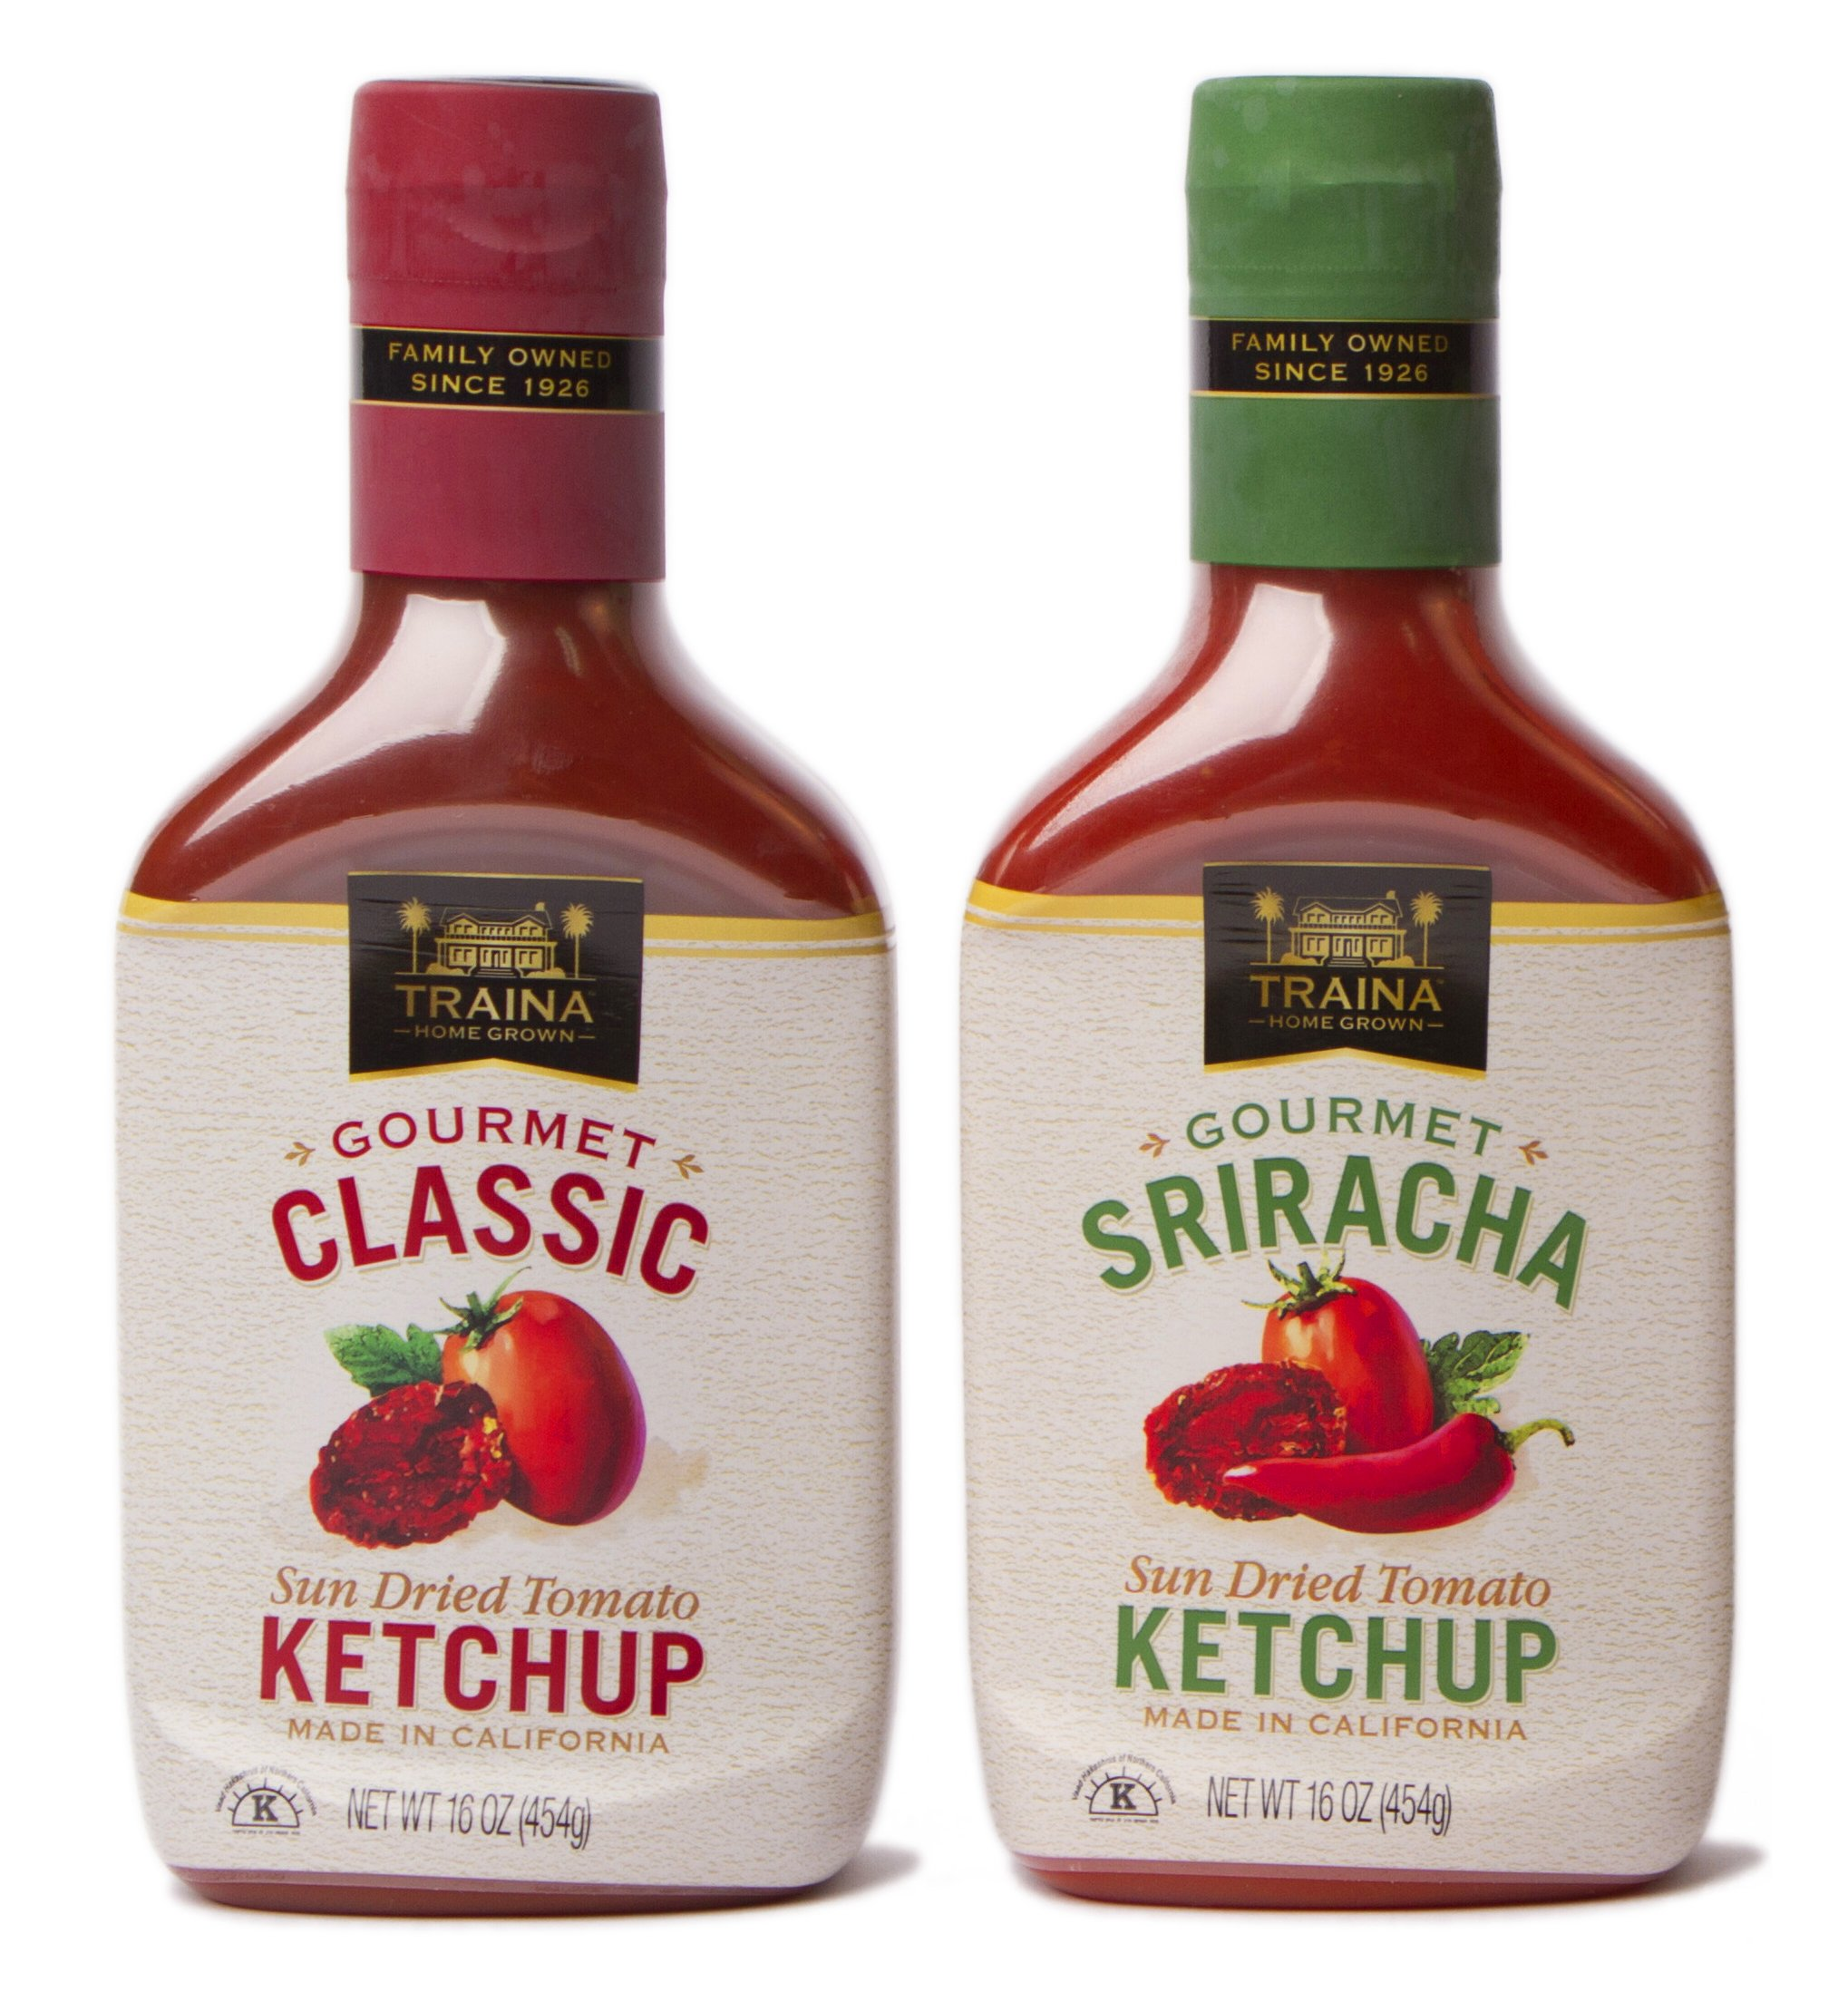 Traina Home Grown Sun Dried Tomato Ketchup Combo Pack - 1 Classic bottle 16 oz & 1 Sriracha bottle 16 oz